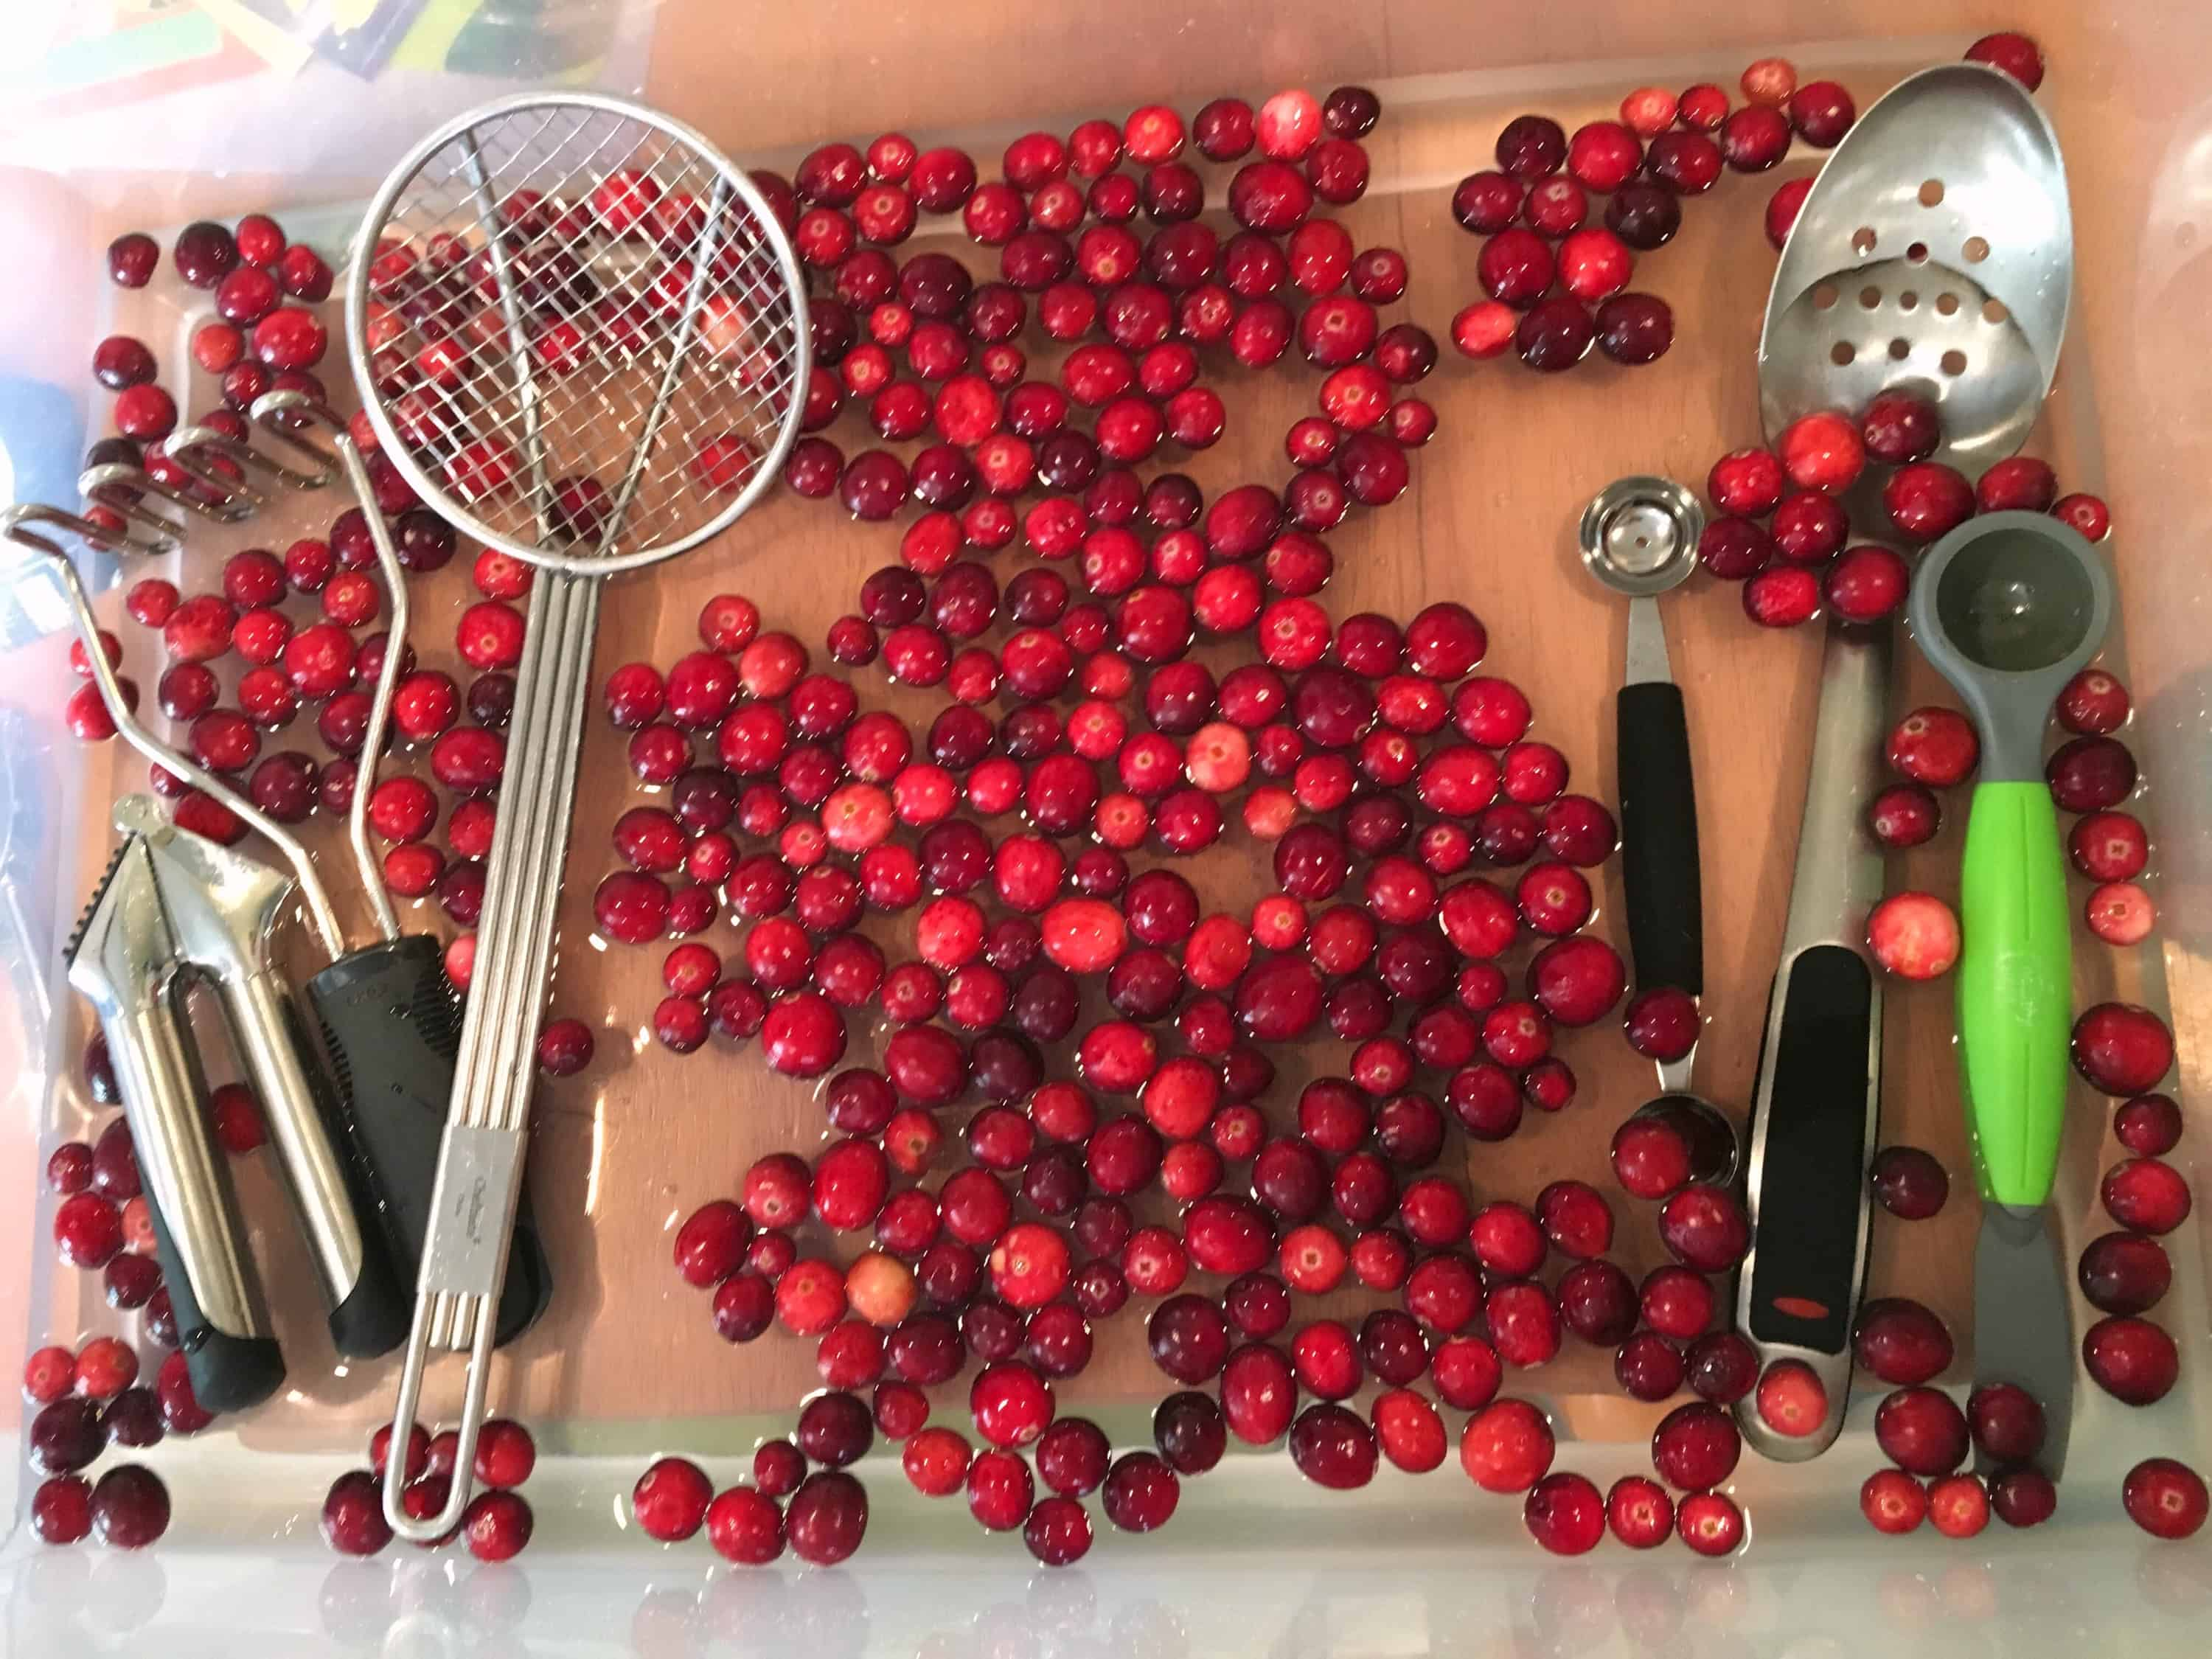 Make an indoor cranberry bog for some simple science and sensory play with kids! A hands-on activity like this will leave an impression.